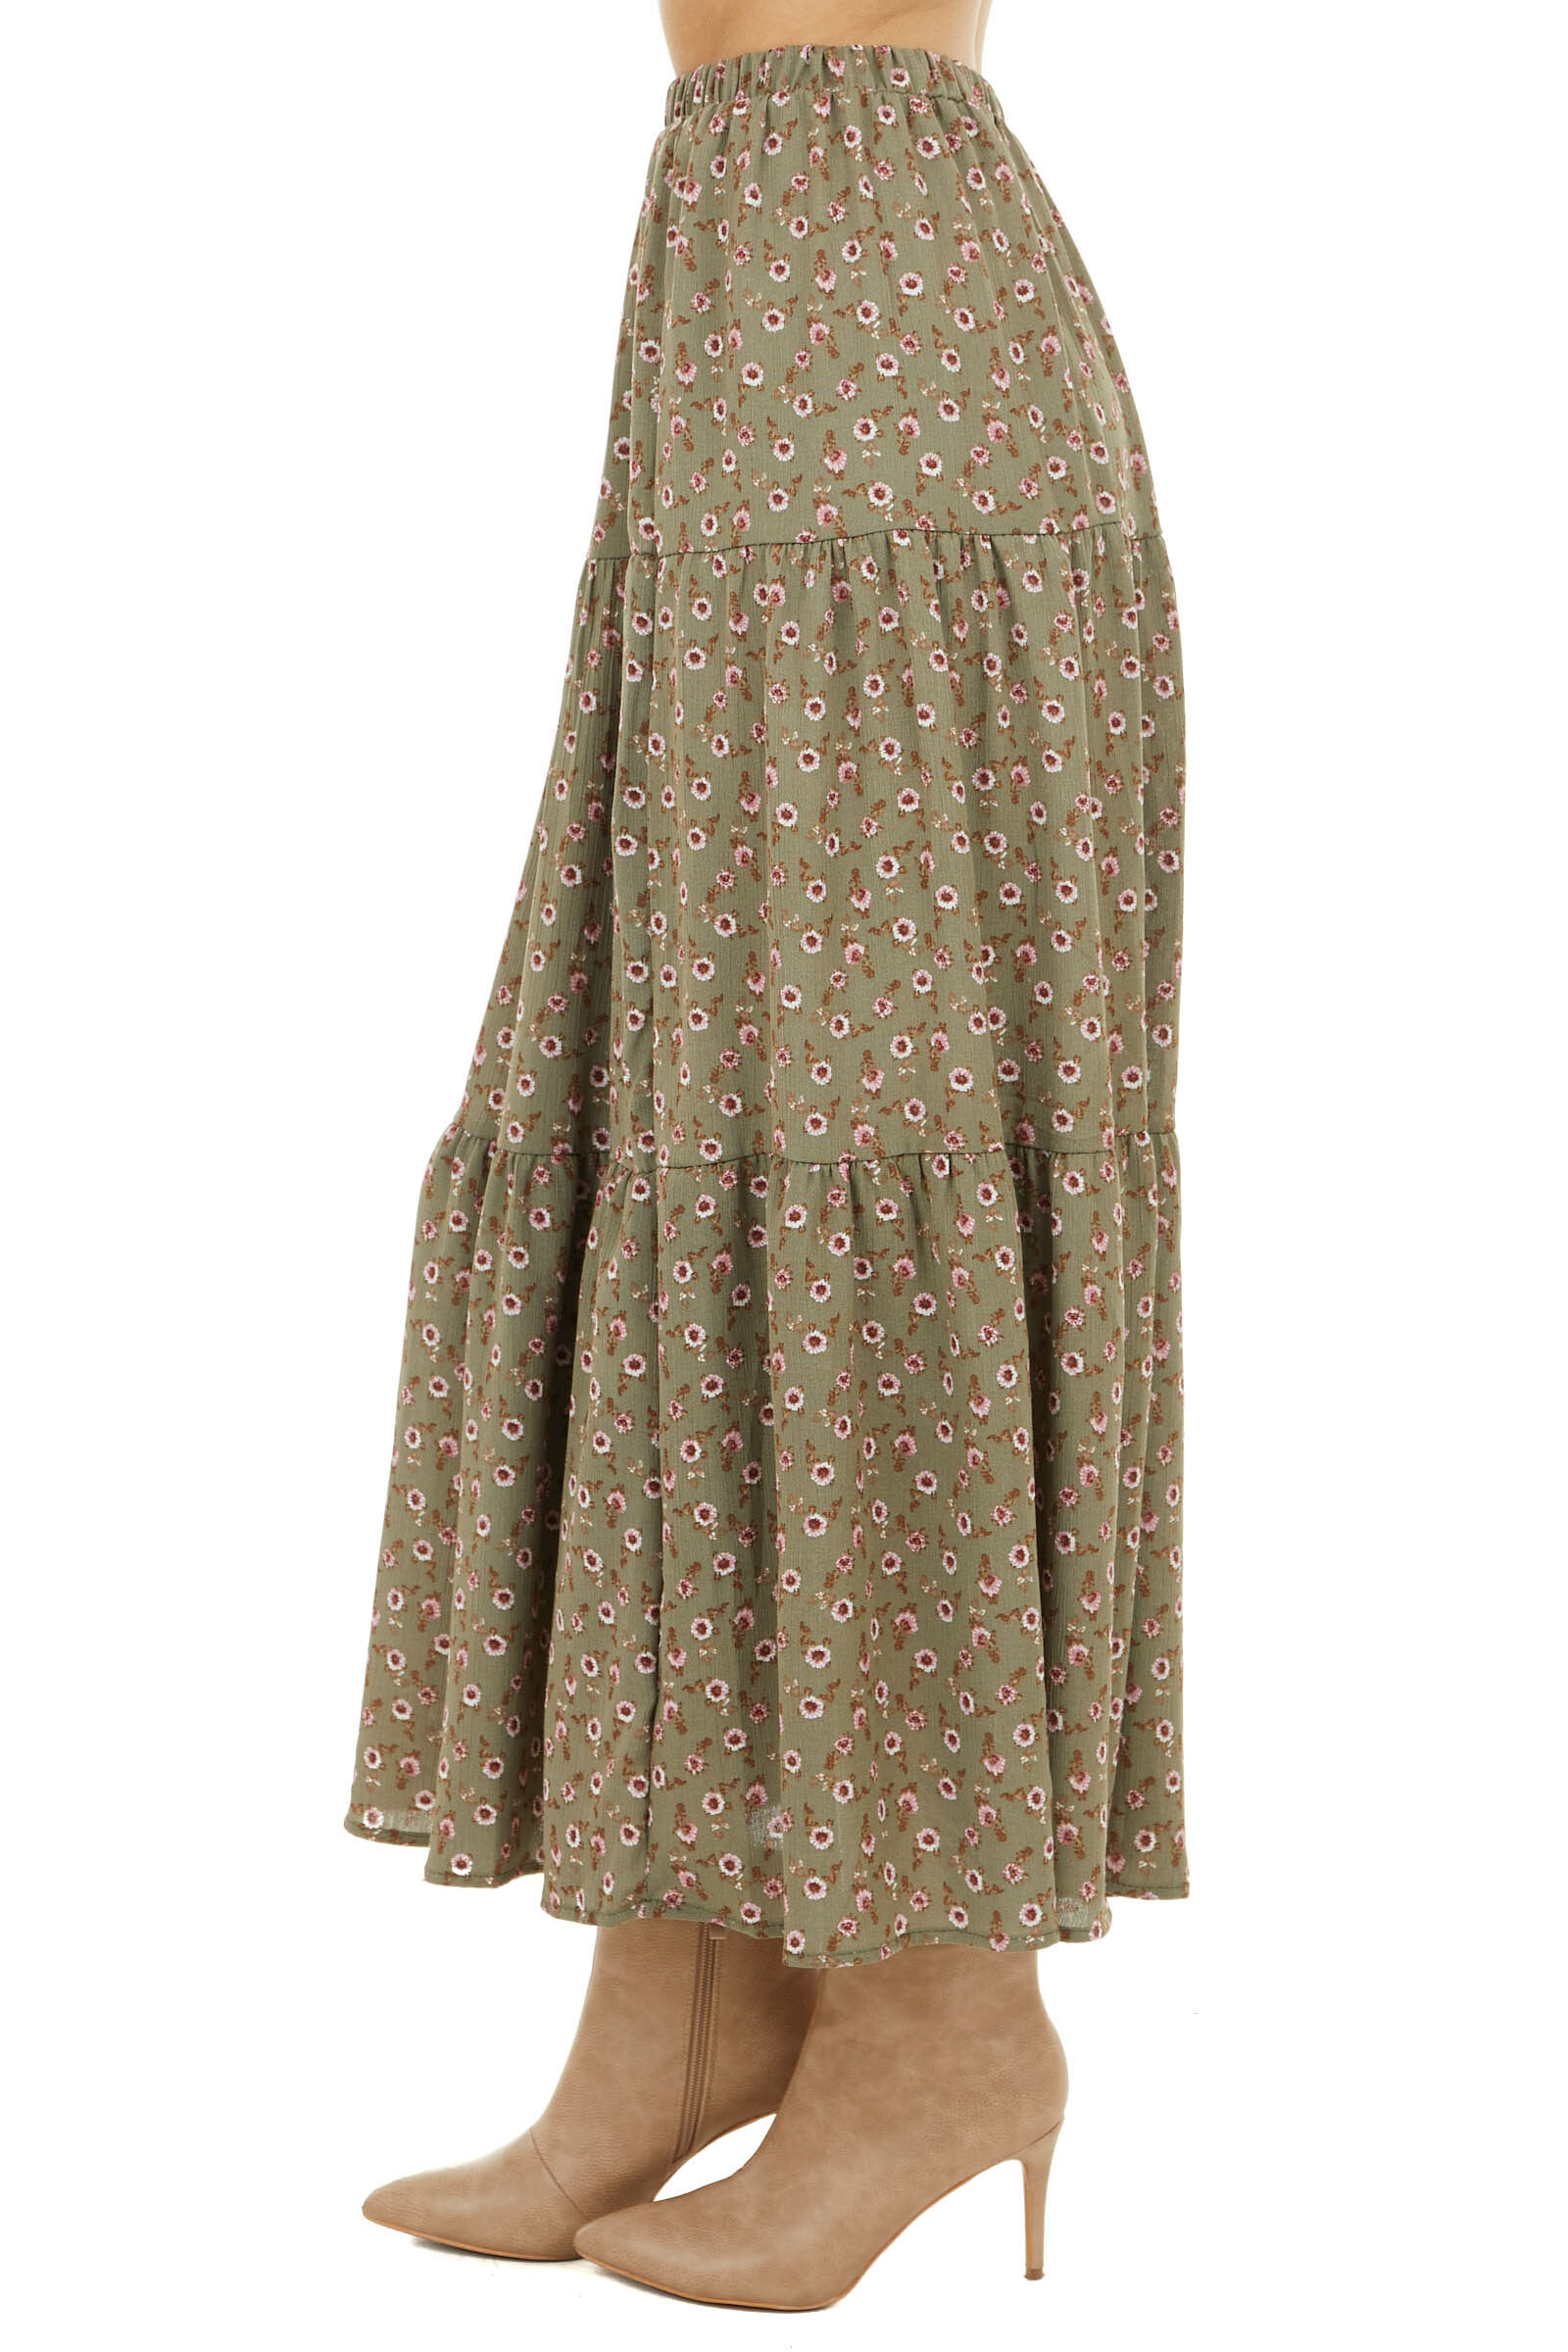 Faded Olive Floral Print Tiered Elastic Waist Maxi Skirt